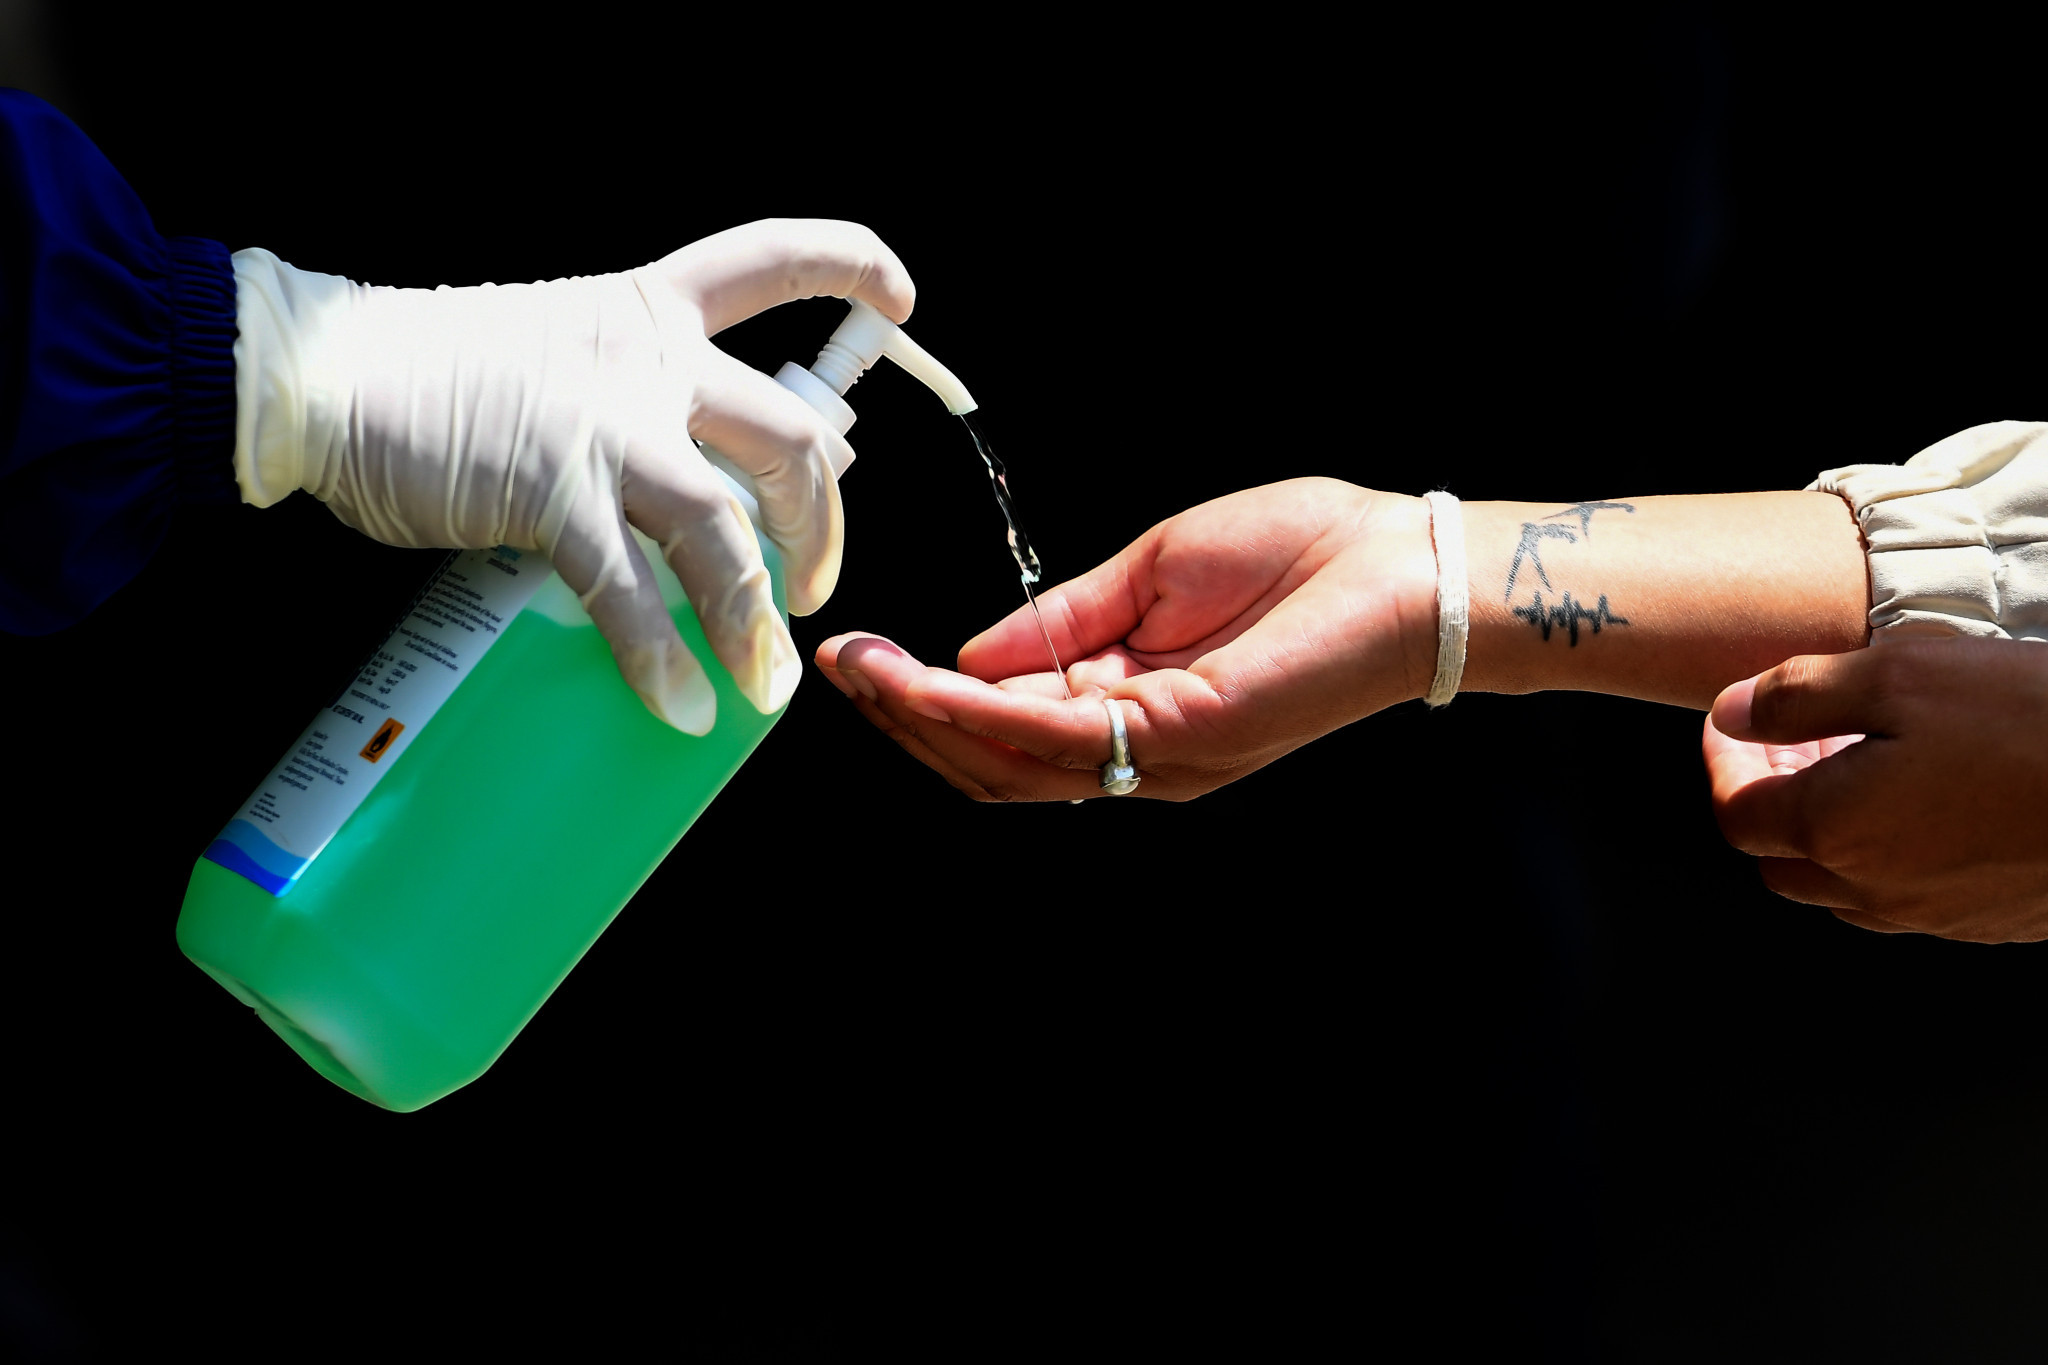 Hand sanitiser is among the items distributed to at-need families by the Cape Verde Olympic Committee ©Getty Images